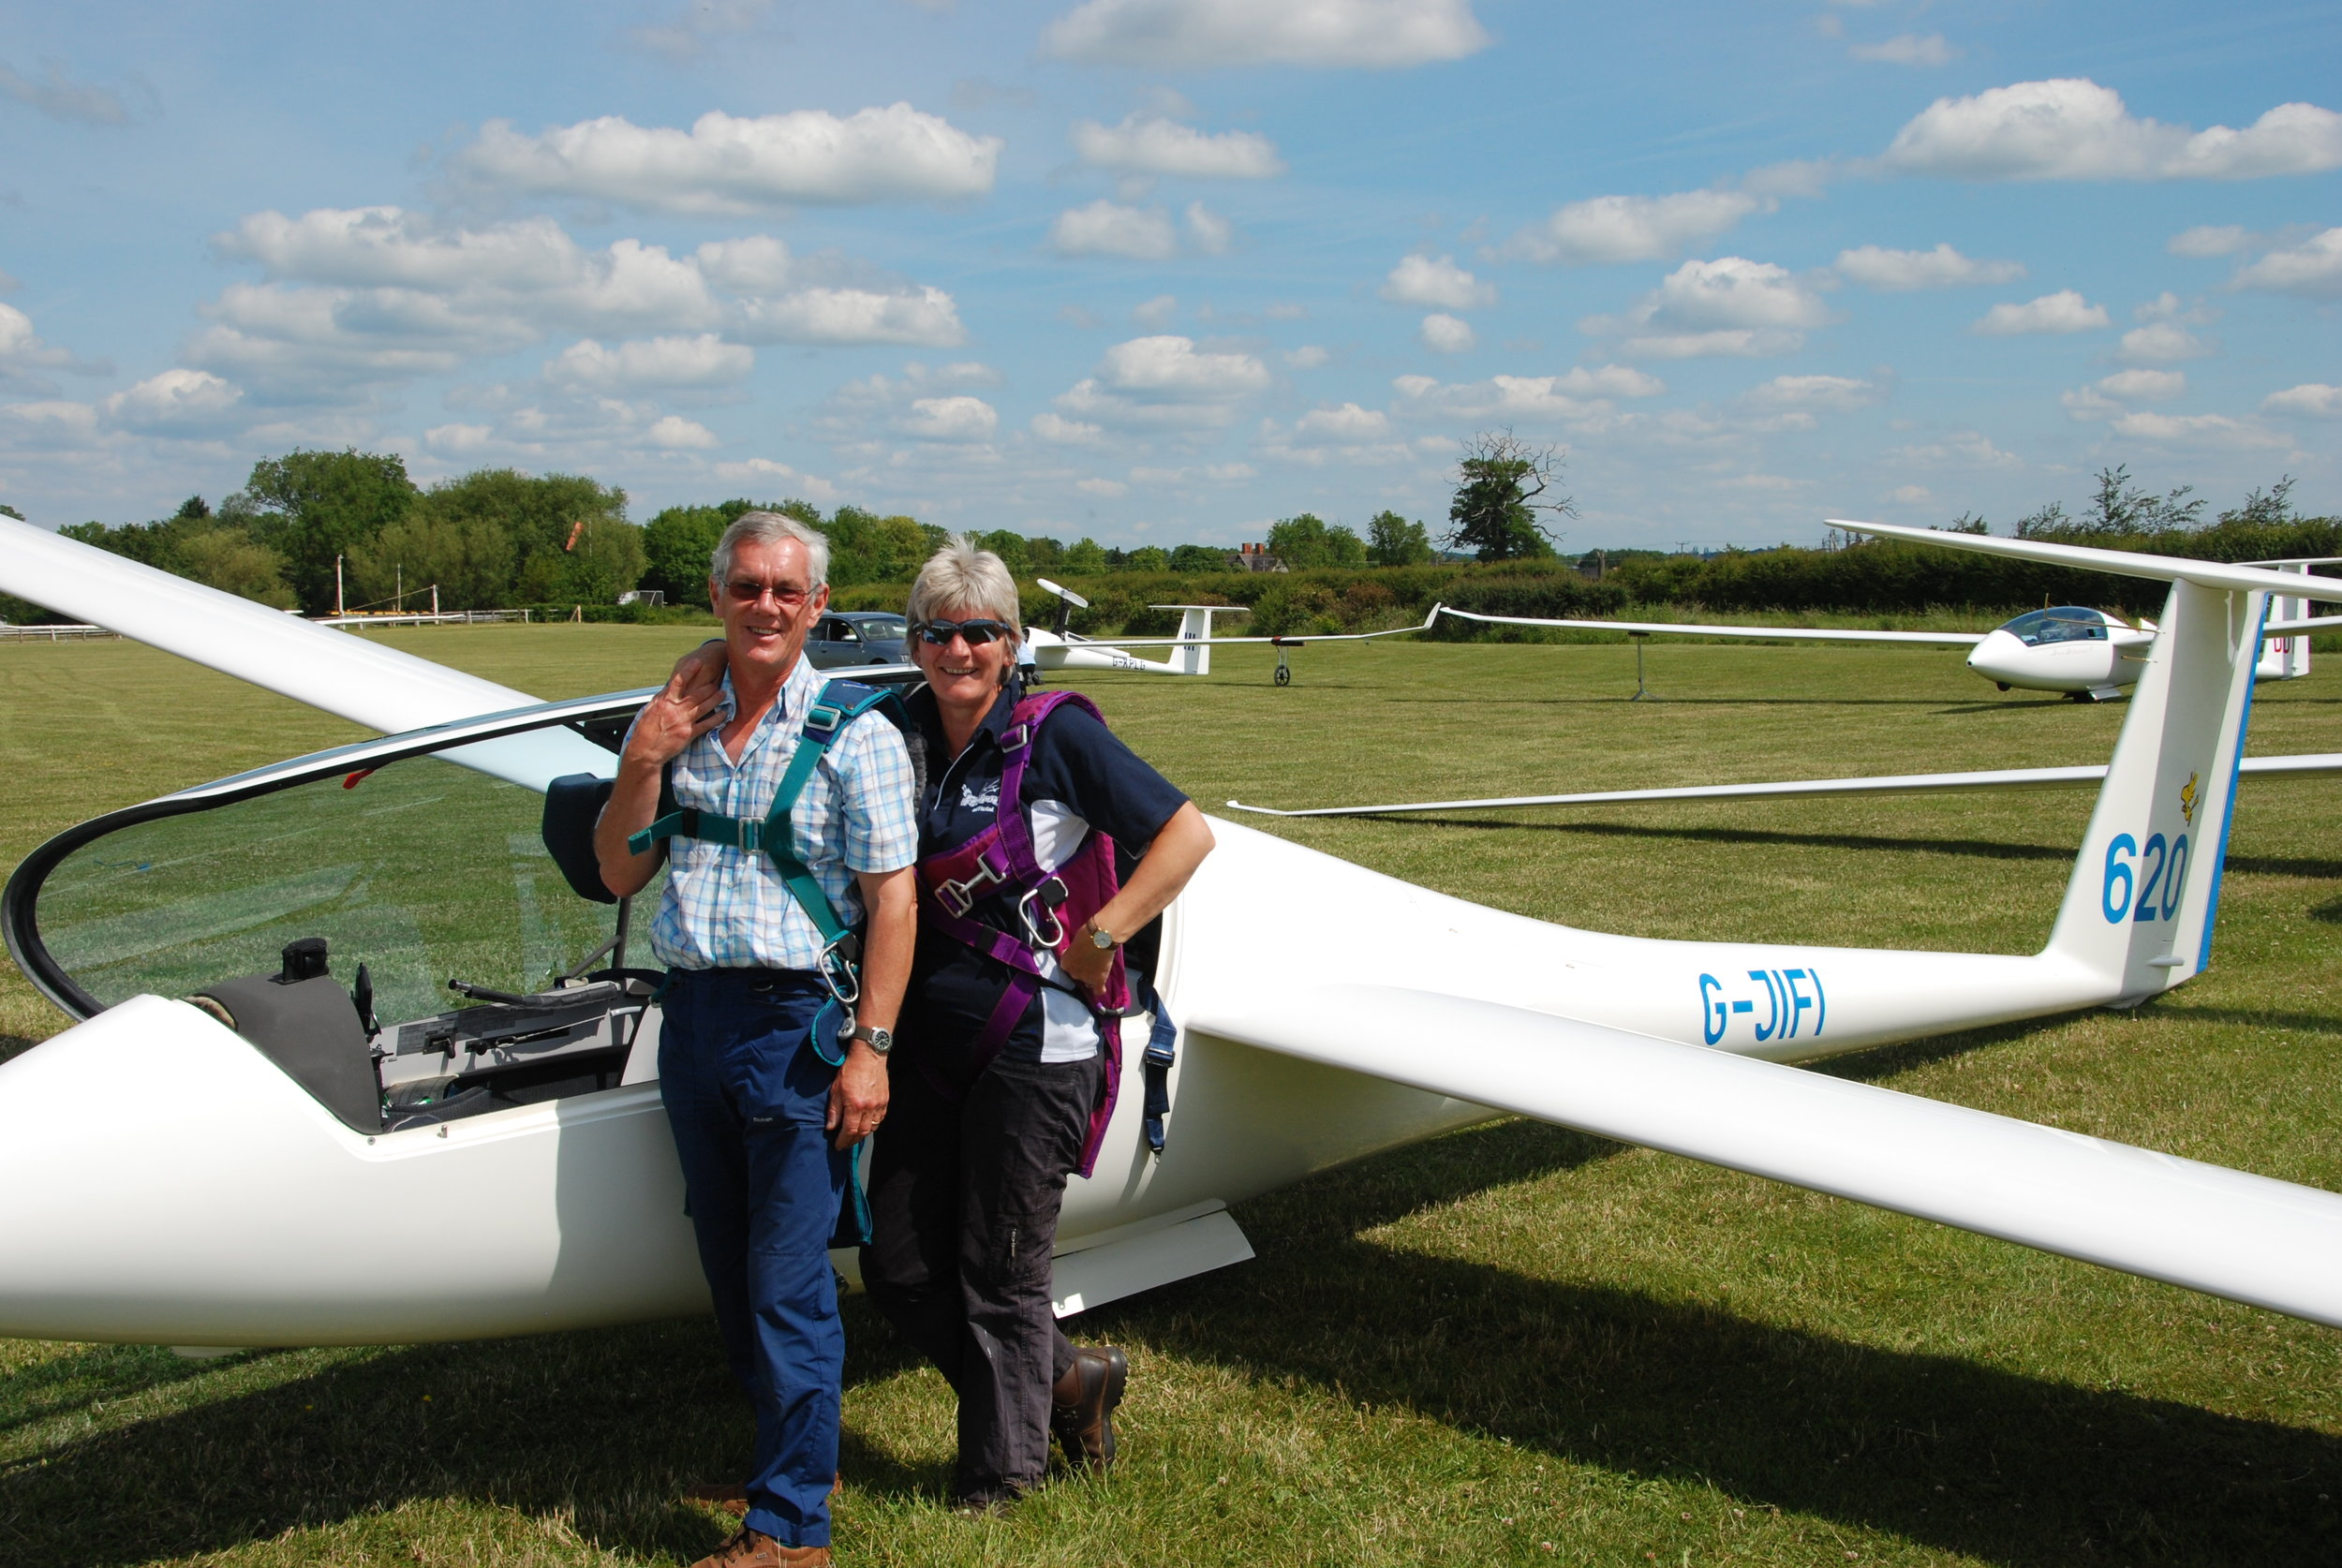 David and Sandy - When we entered a competition at Bidford on Avon we flew together in the duo and boiled in the hot weather.